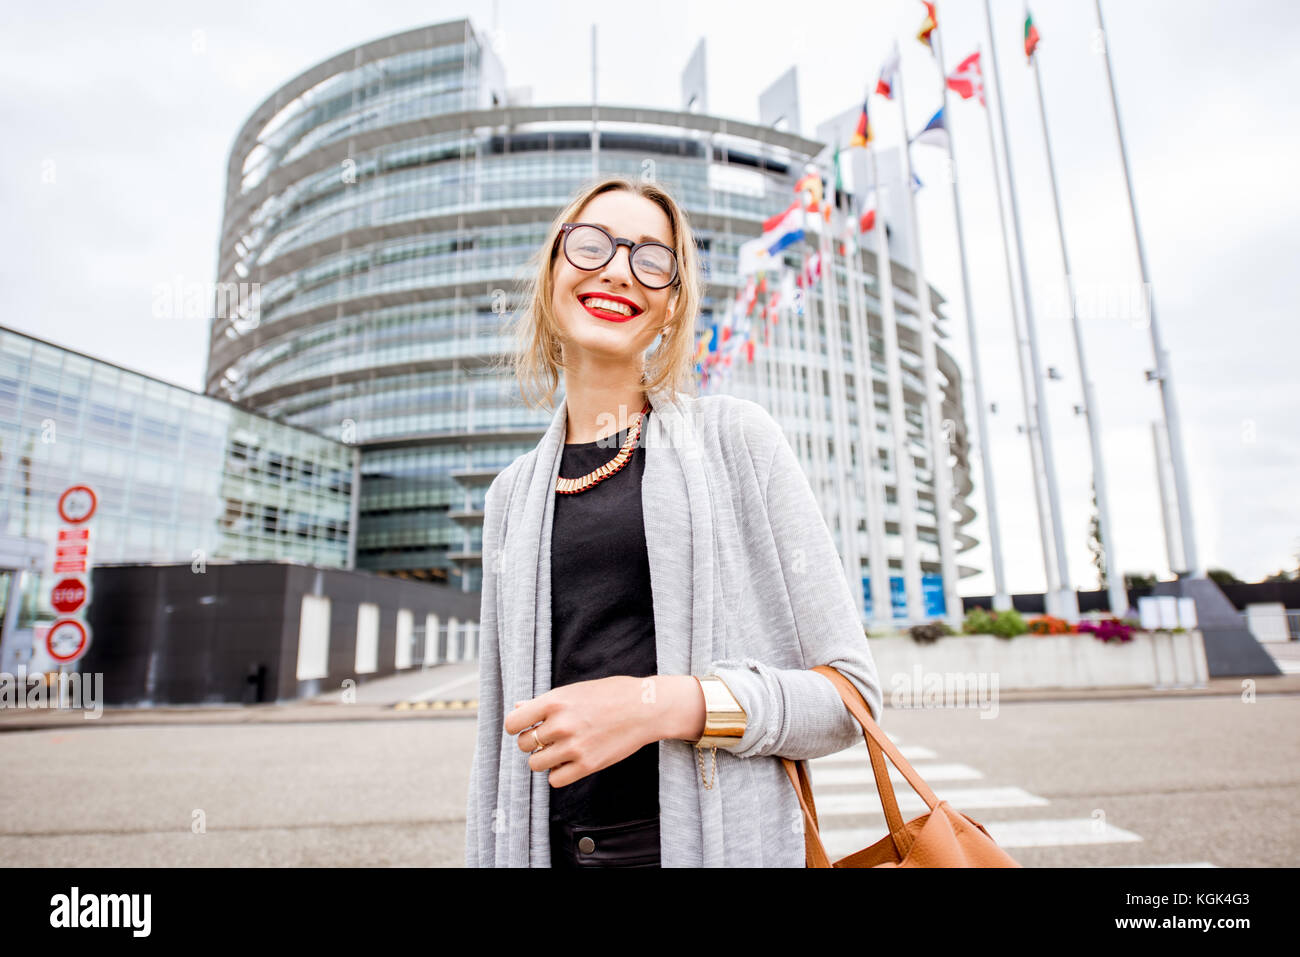 Woman near the European parliament building in Strasbourg - Stock Image